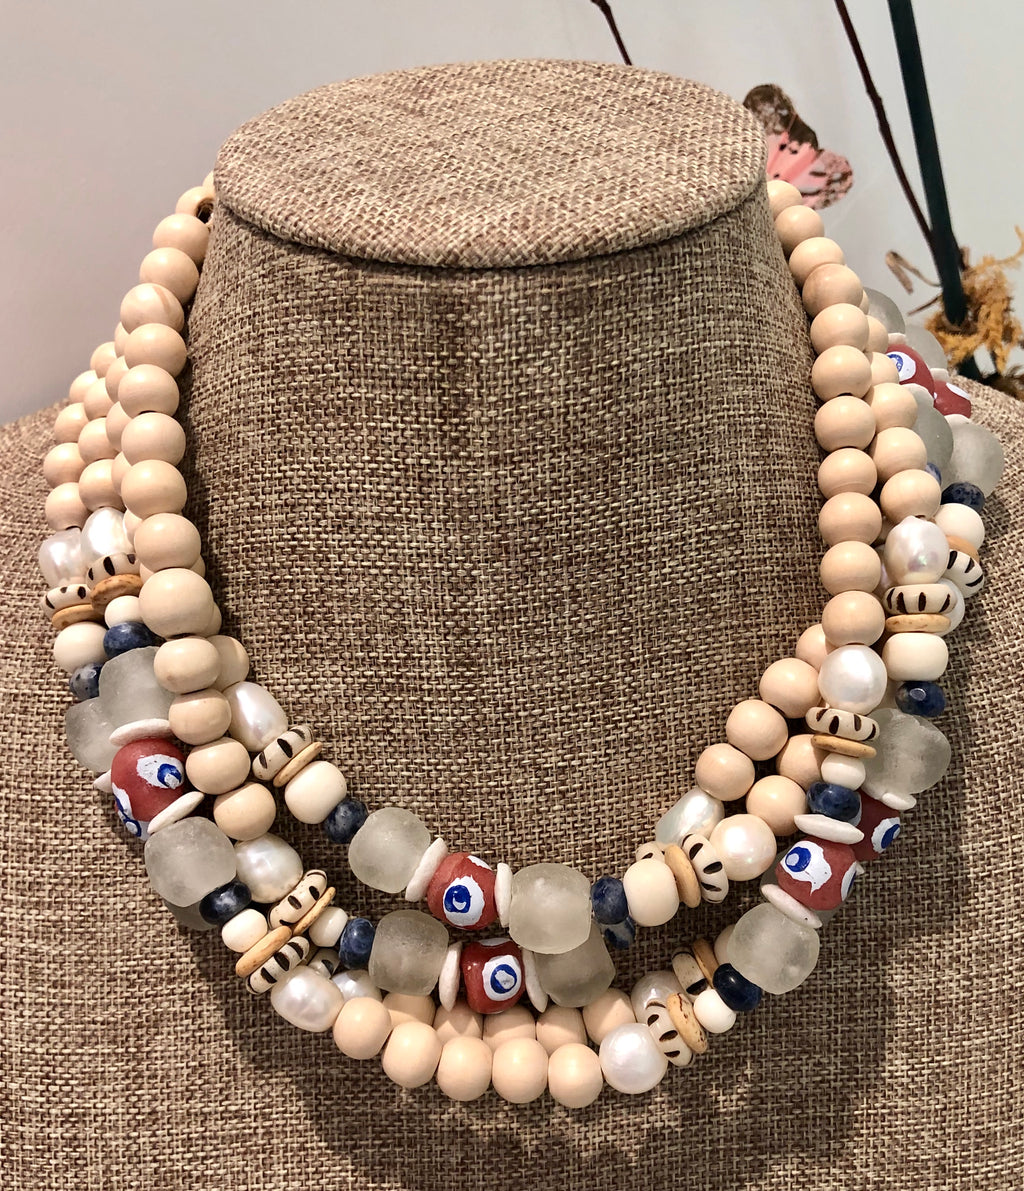 freshwater baroque pearl, wood, pink krobo african bead and sodalite necklace